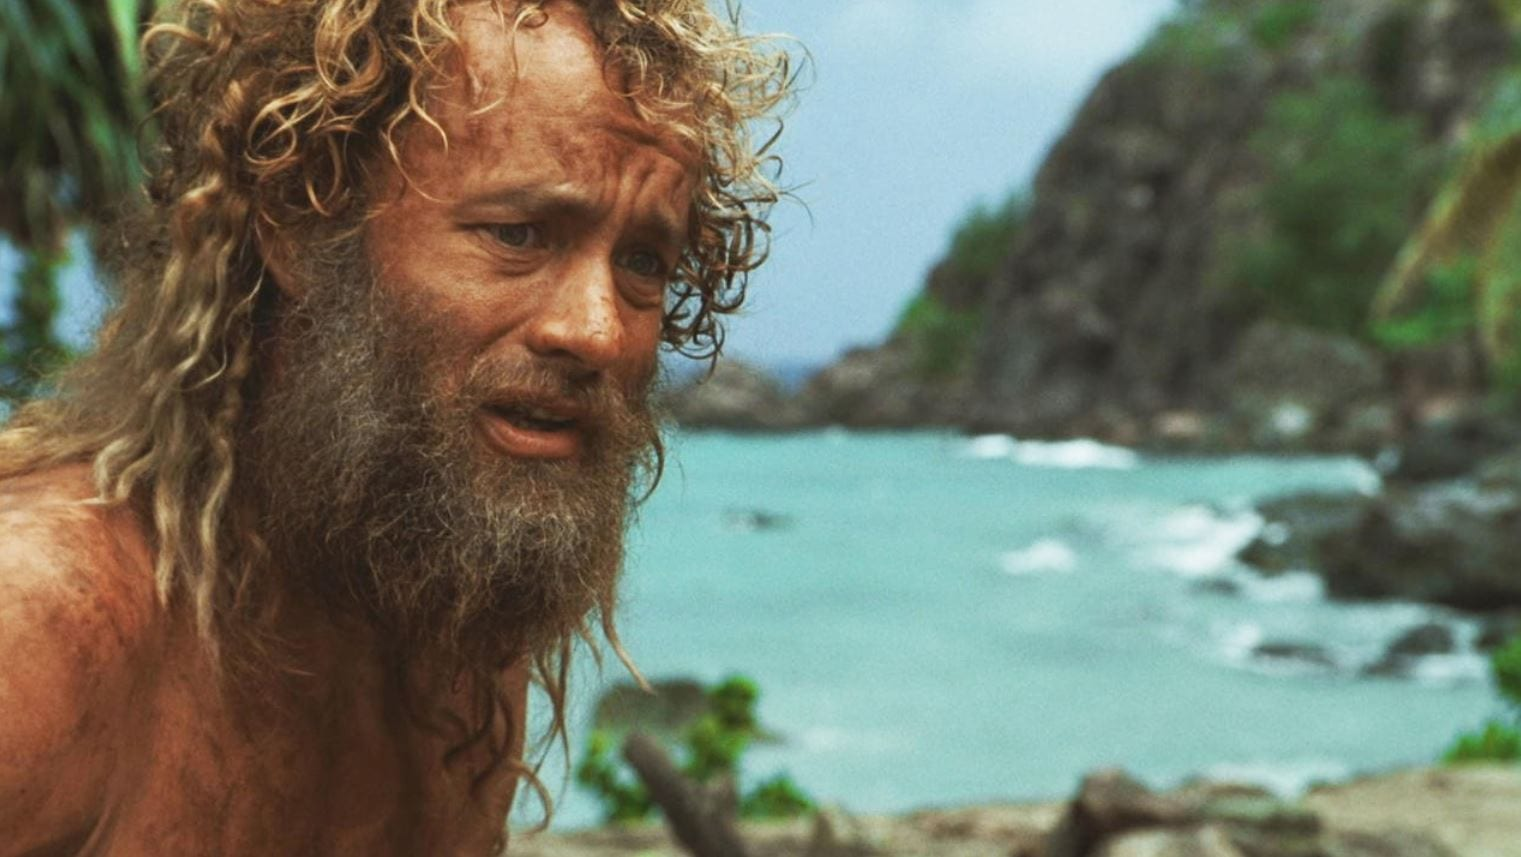 Cast Away Ending Explained: Who Does Chuck End Up With?